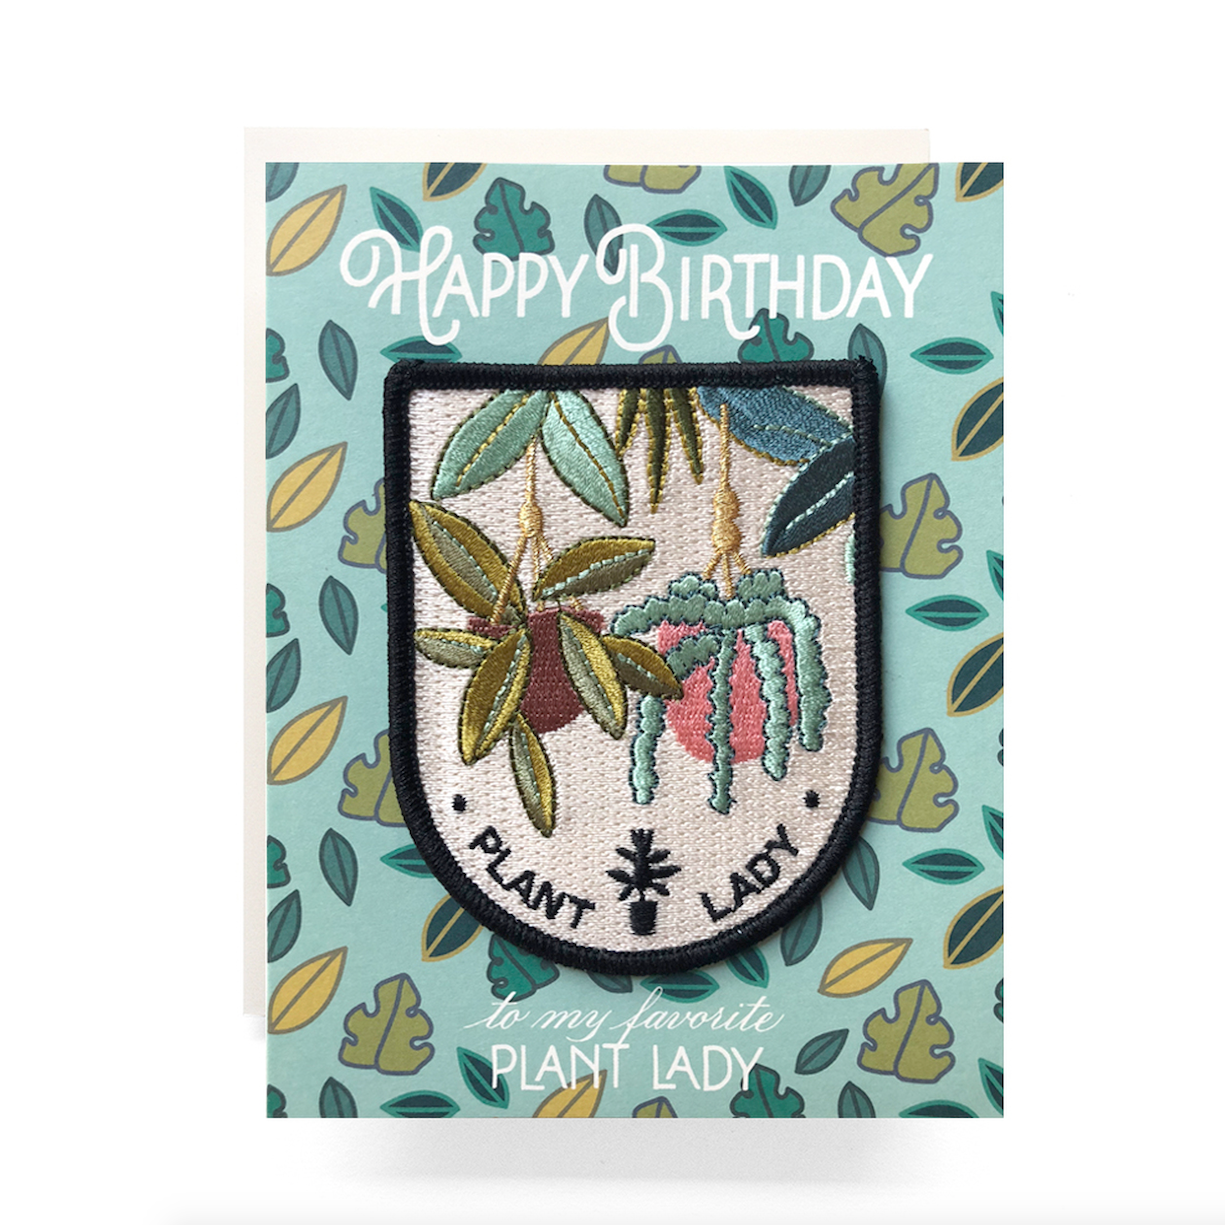 Antiquaria - AN Plant Lady Birthday Card + Patch